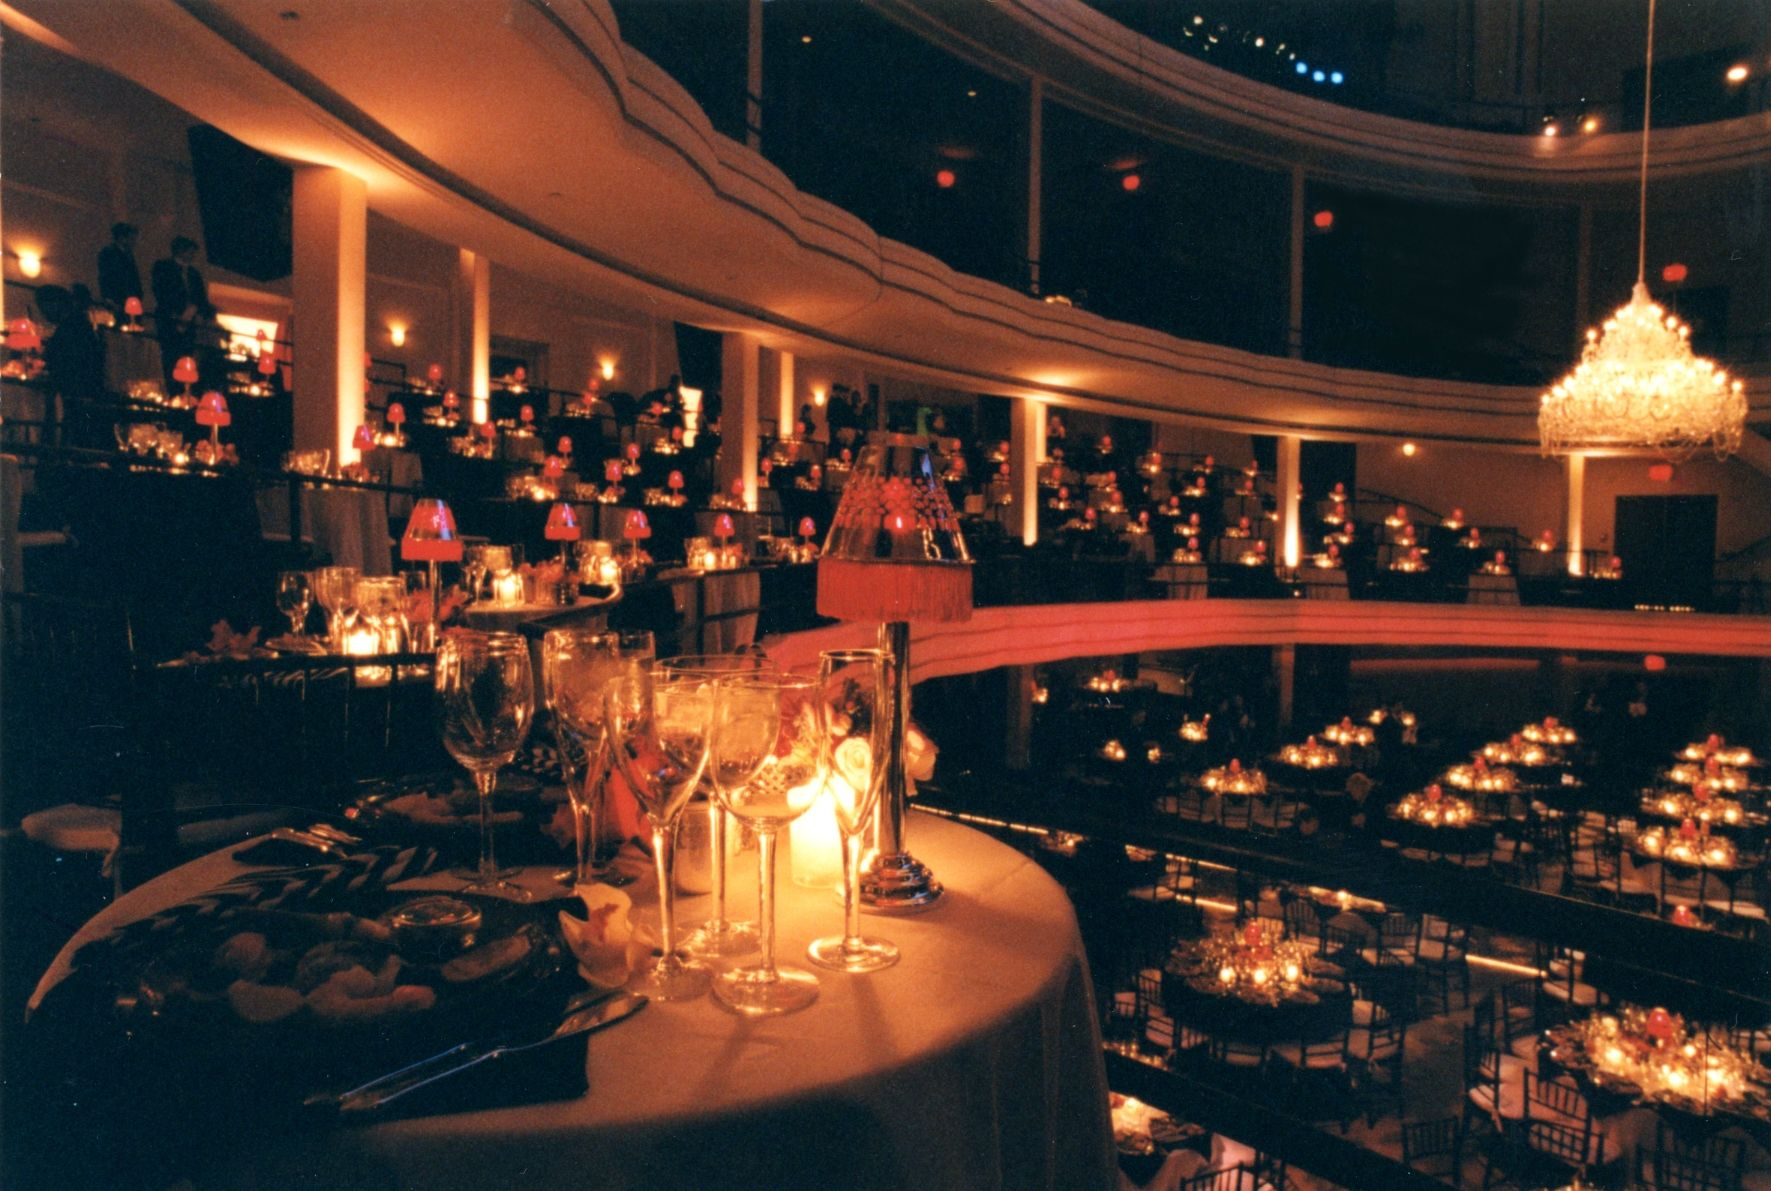 Hammerstein Banquet and Balcony with chandelier